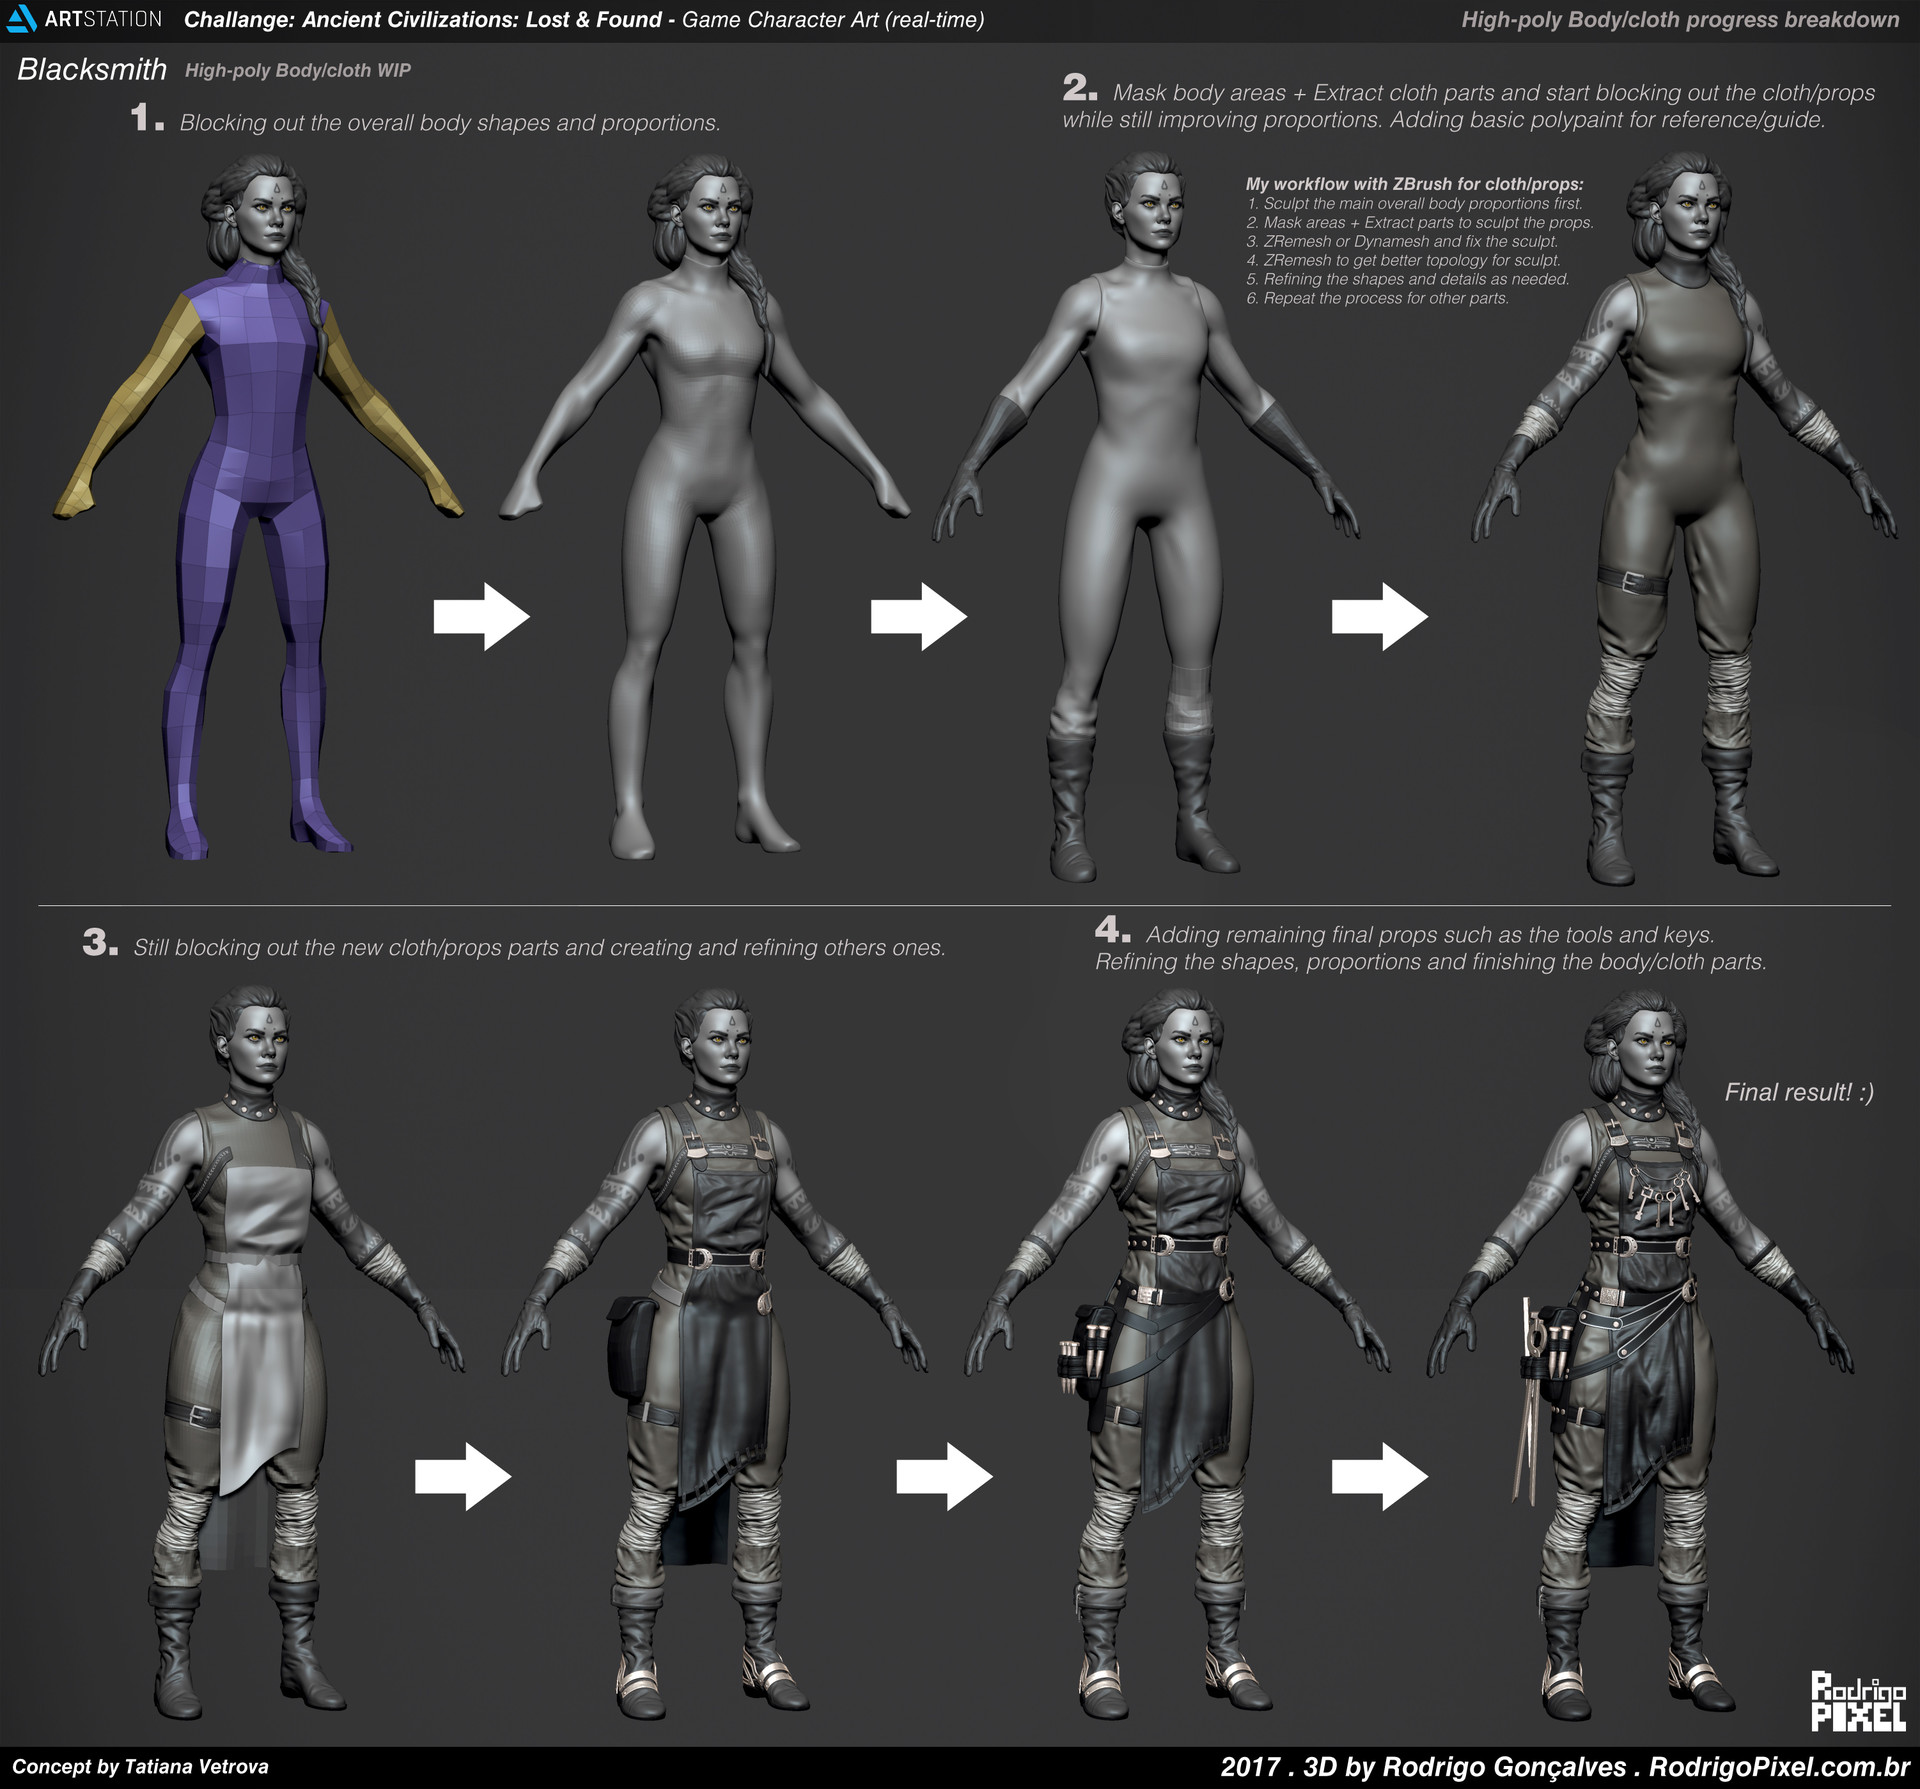 rodrigo-goncalves-blacksmith-highpoly-wip-body-breakdown.jpg